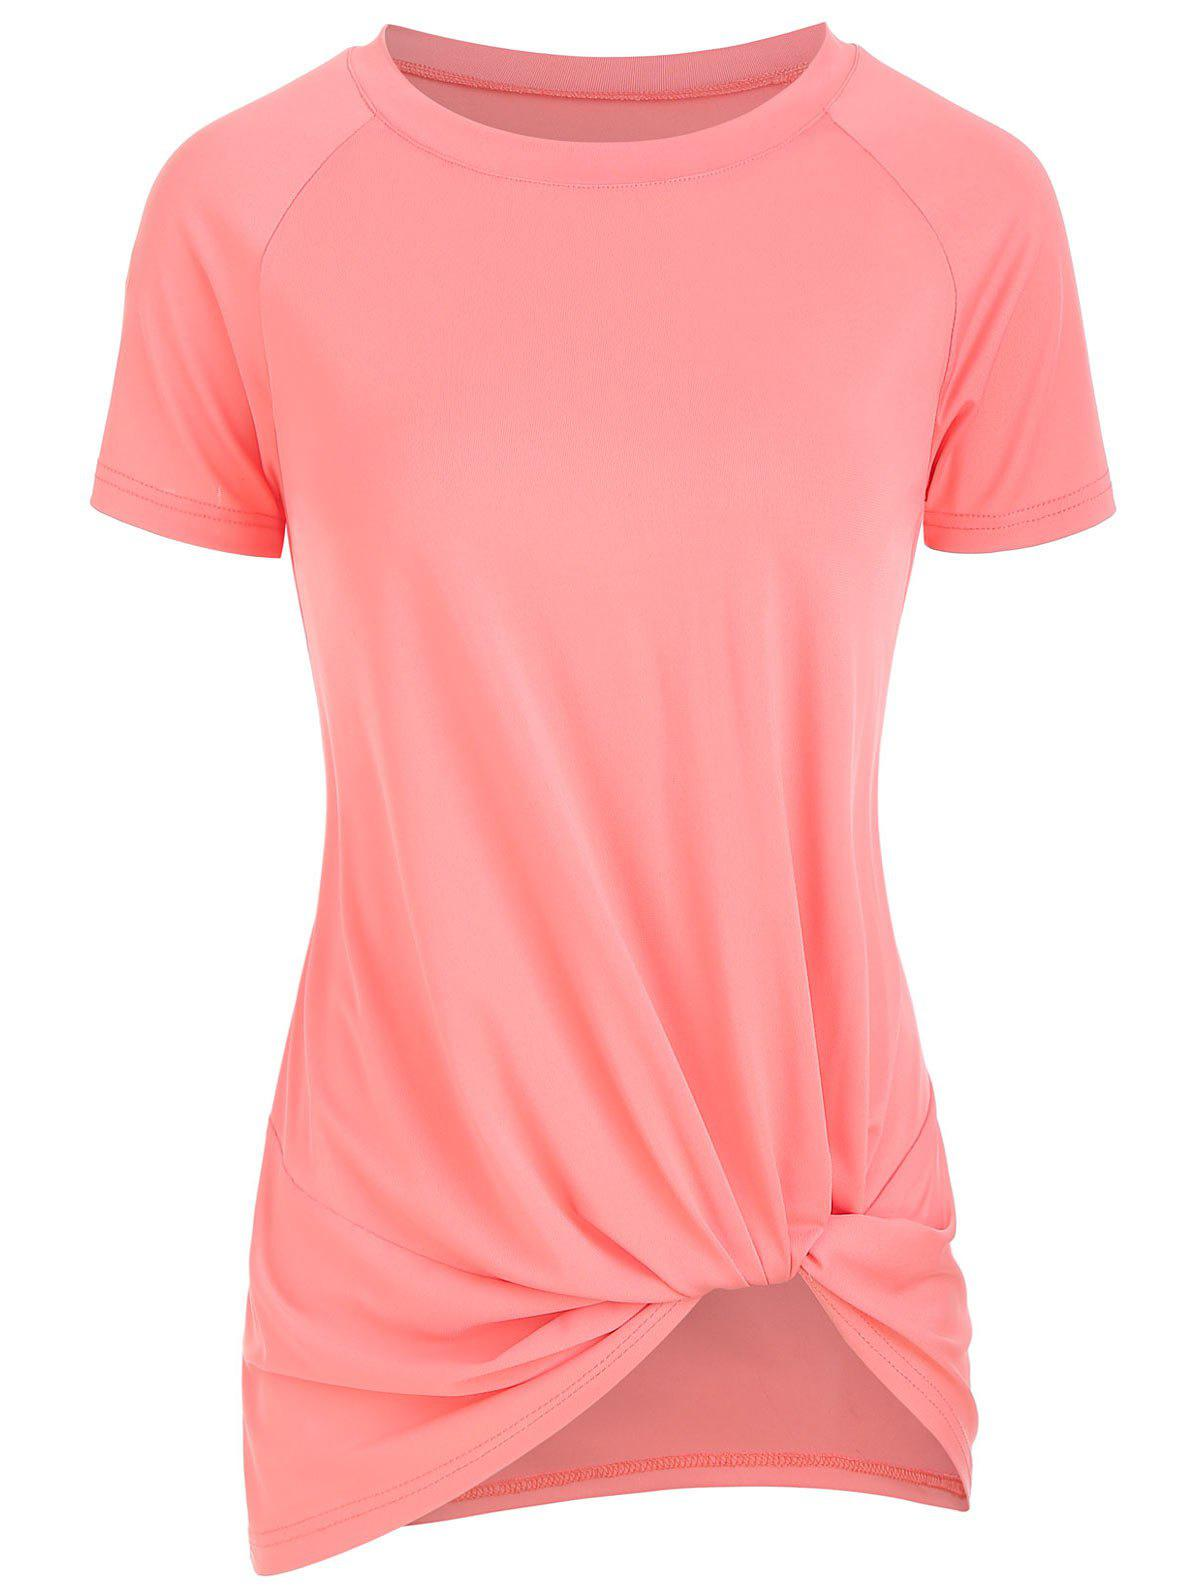 New Knotted Short Sleeve Round Neck Tee